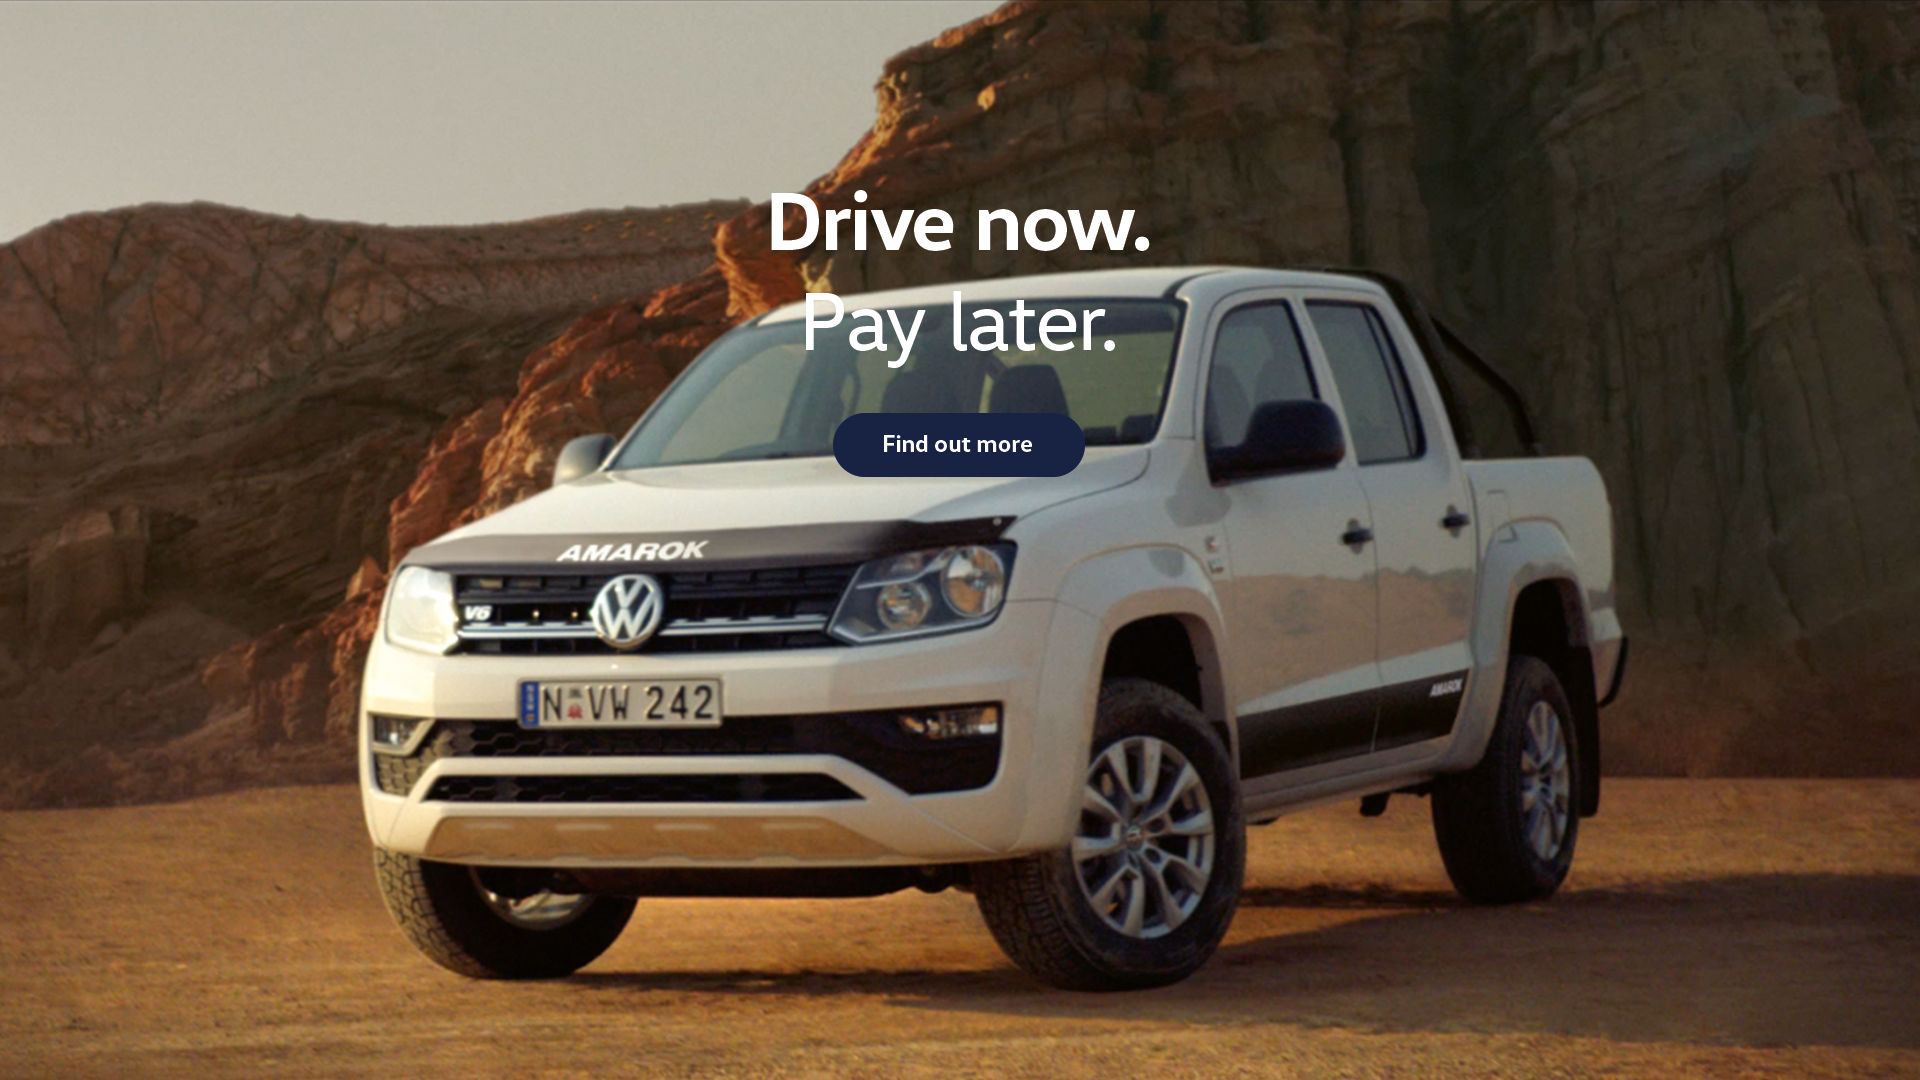 Volkswagen Amarok. Drive now. Pay later. Test drive today at Geoff King Volkswagen.